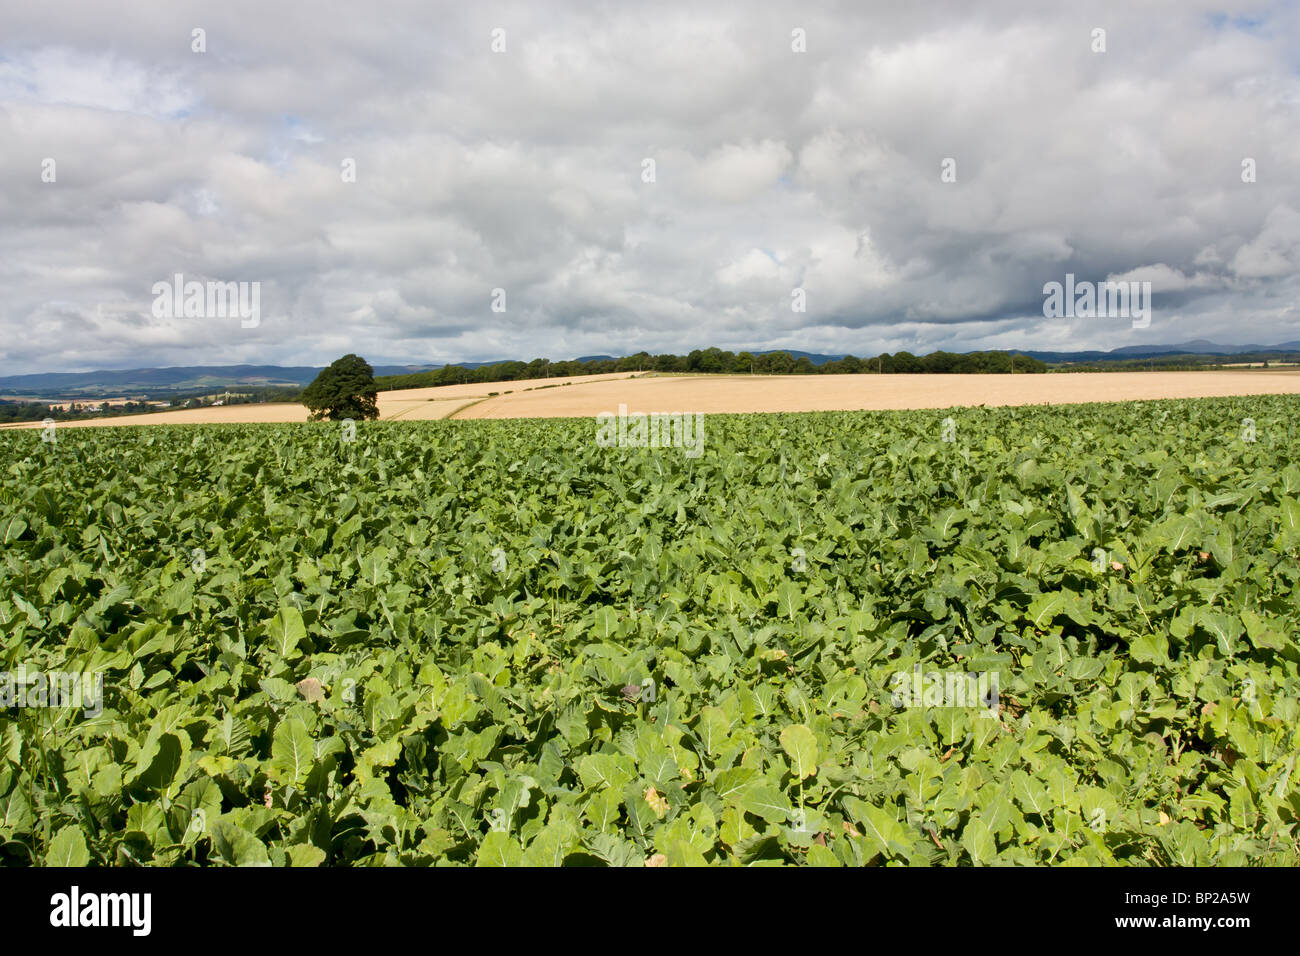 Scottish farming scene with cabbage crop in foreground and cereal crop in distance. - Stock Image